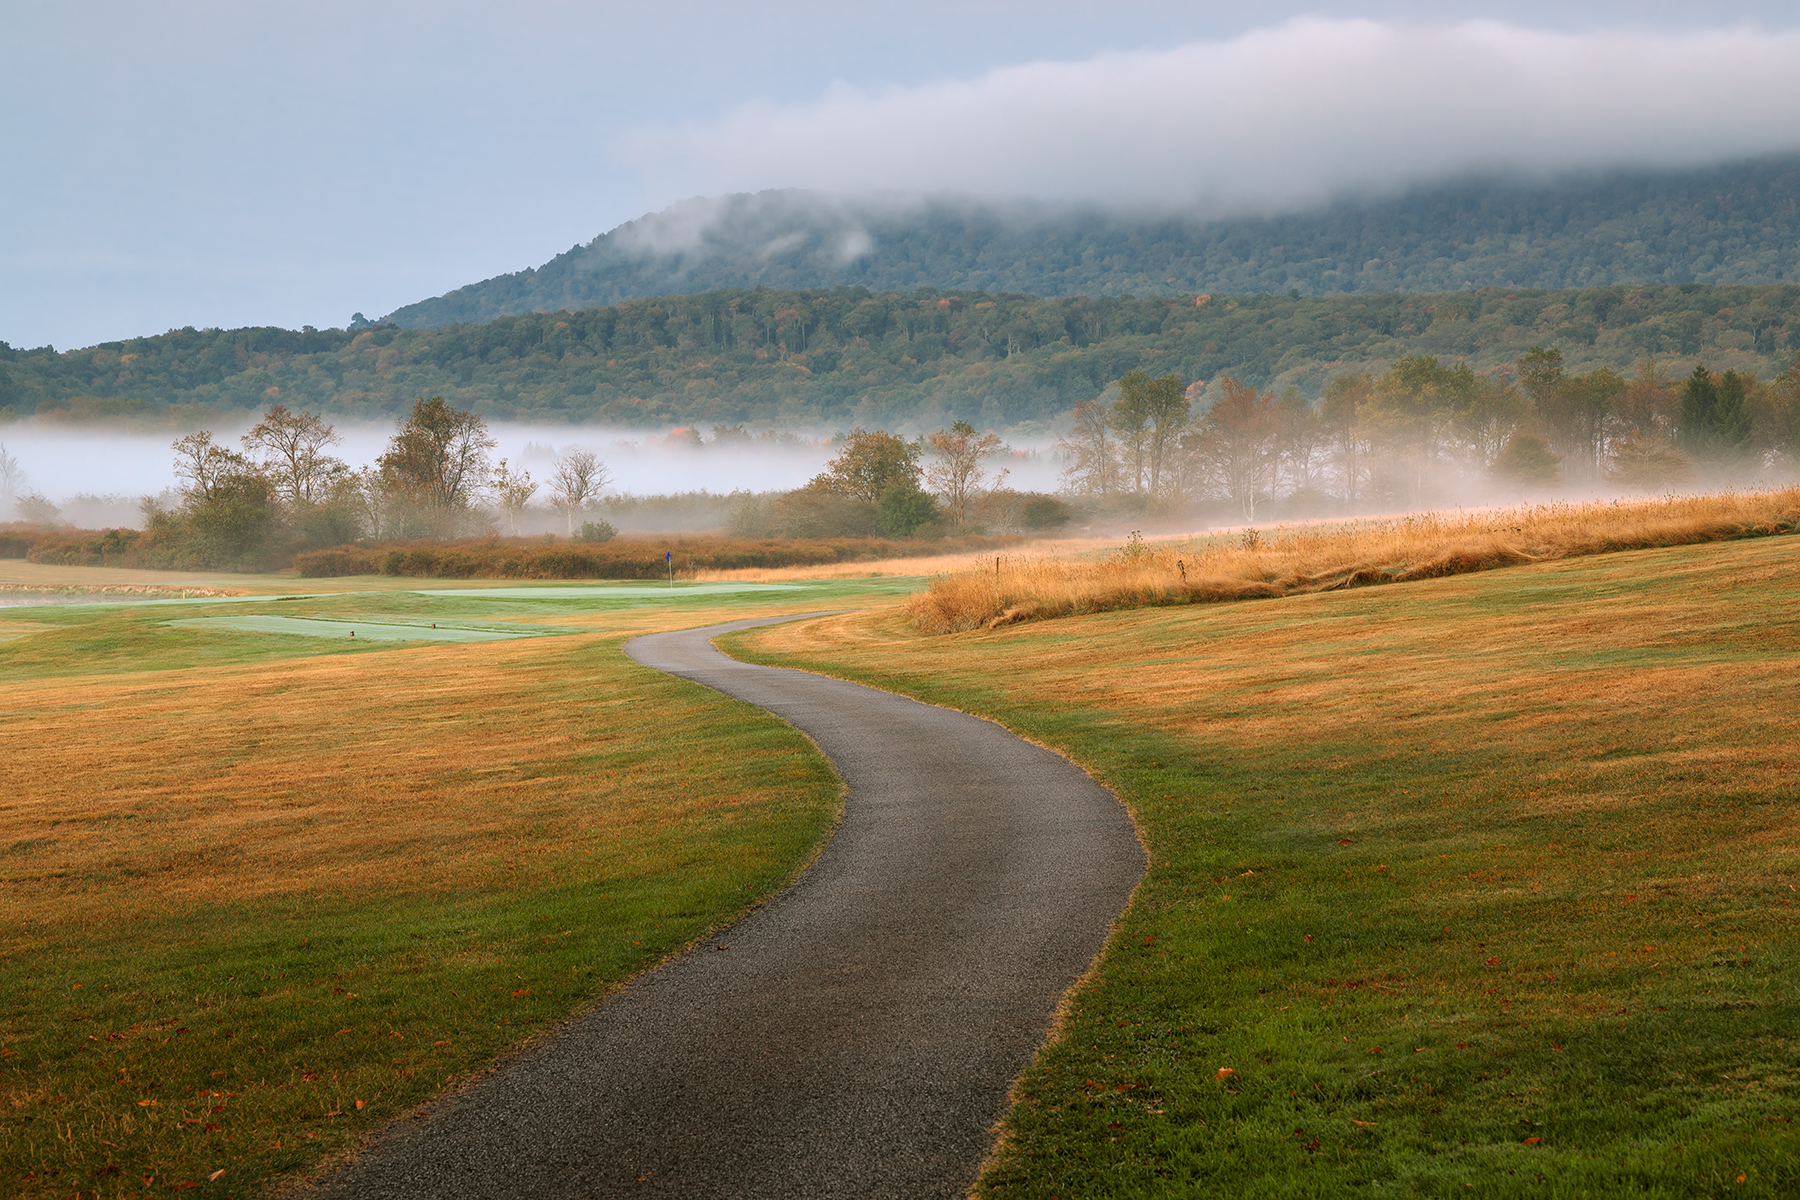 Misty Dawn Golf Course - HDR, America, Perspective, Serenity, Serene, HQ Photo